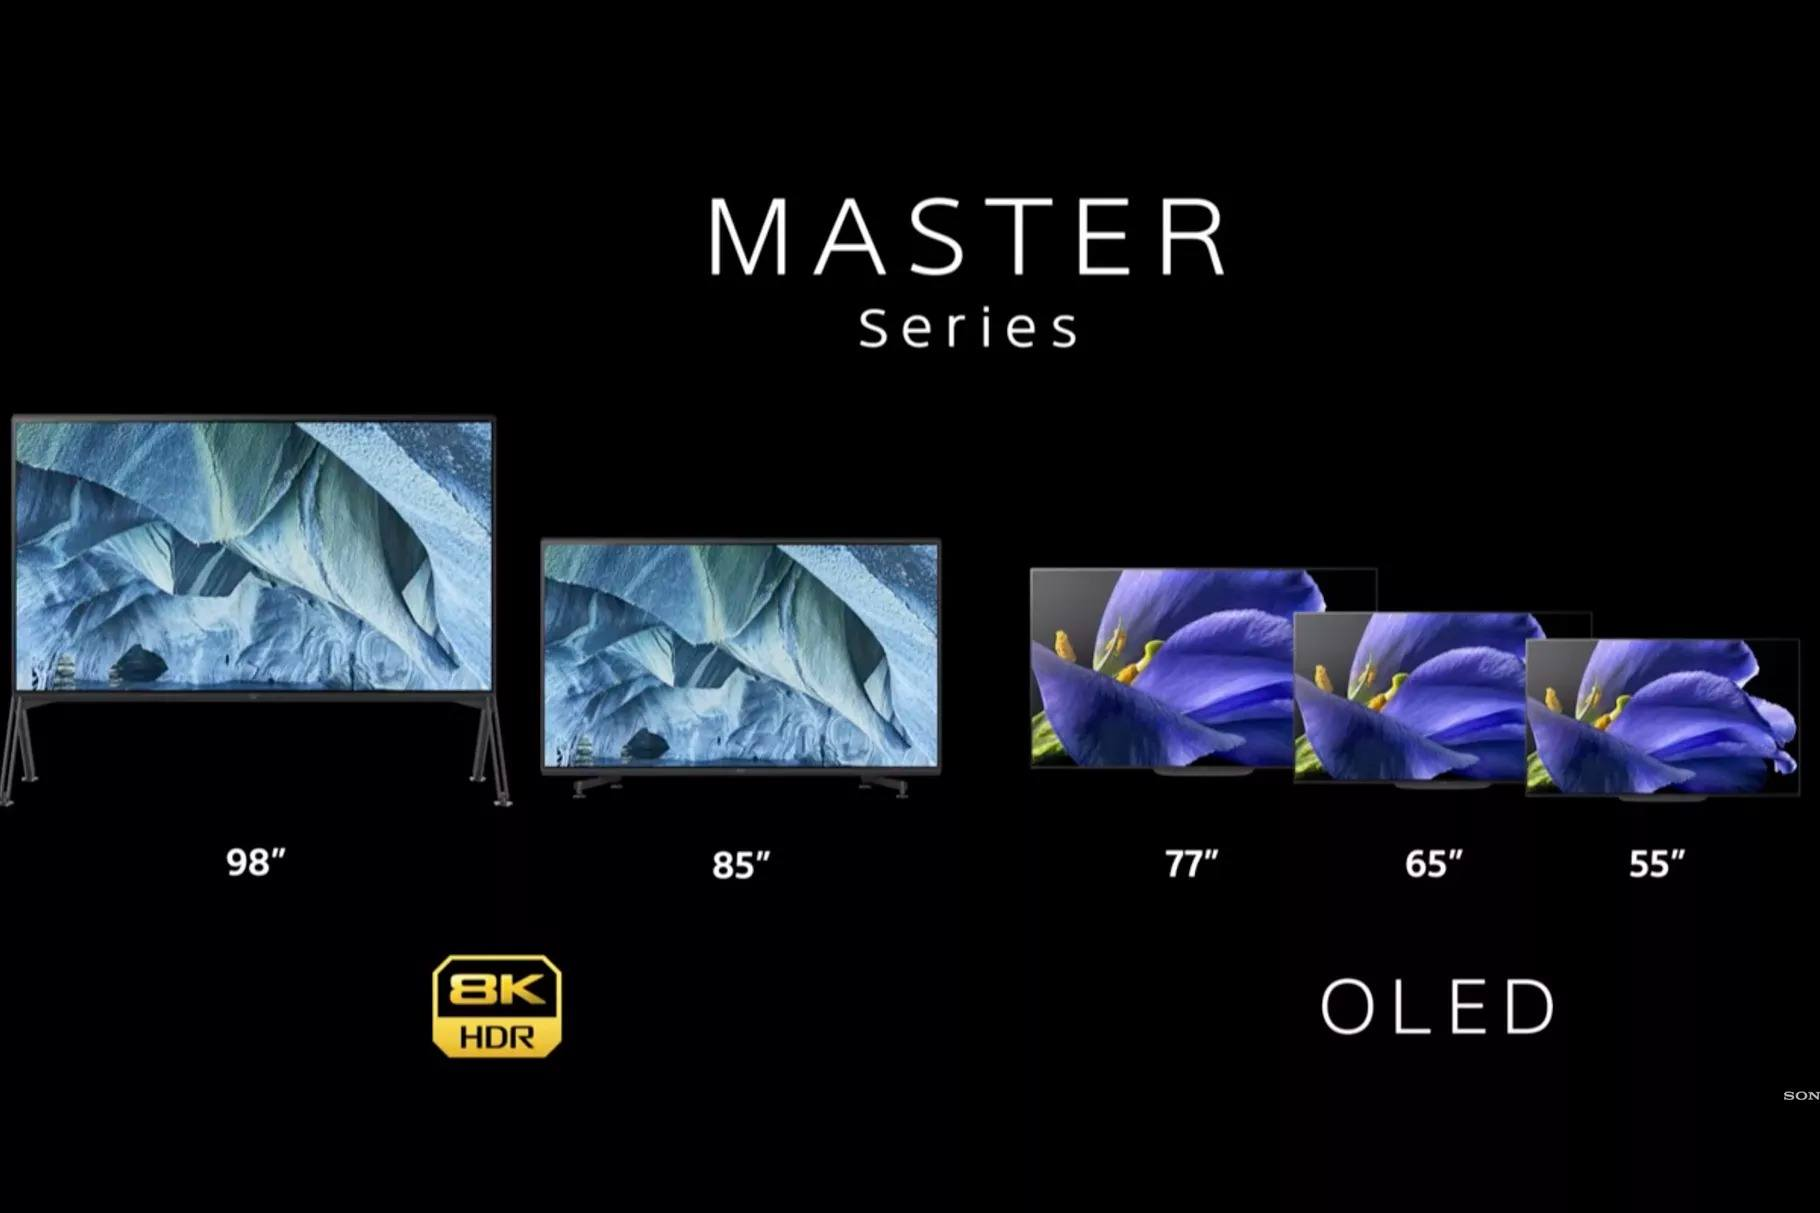 sony master series ces 2019